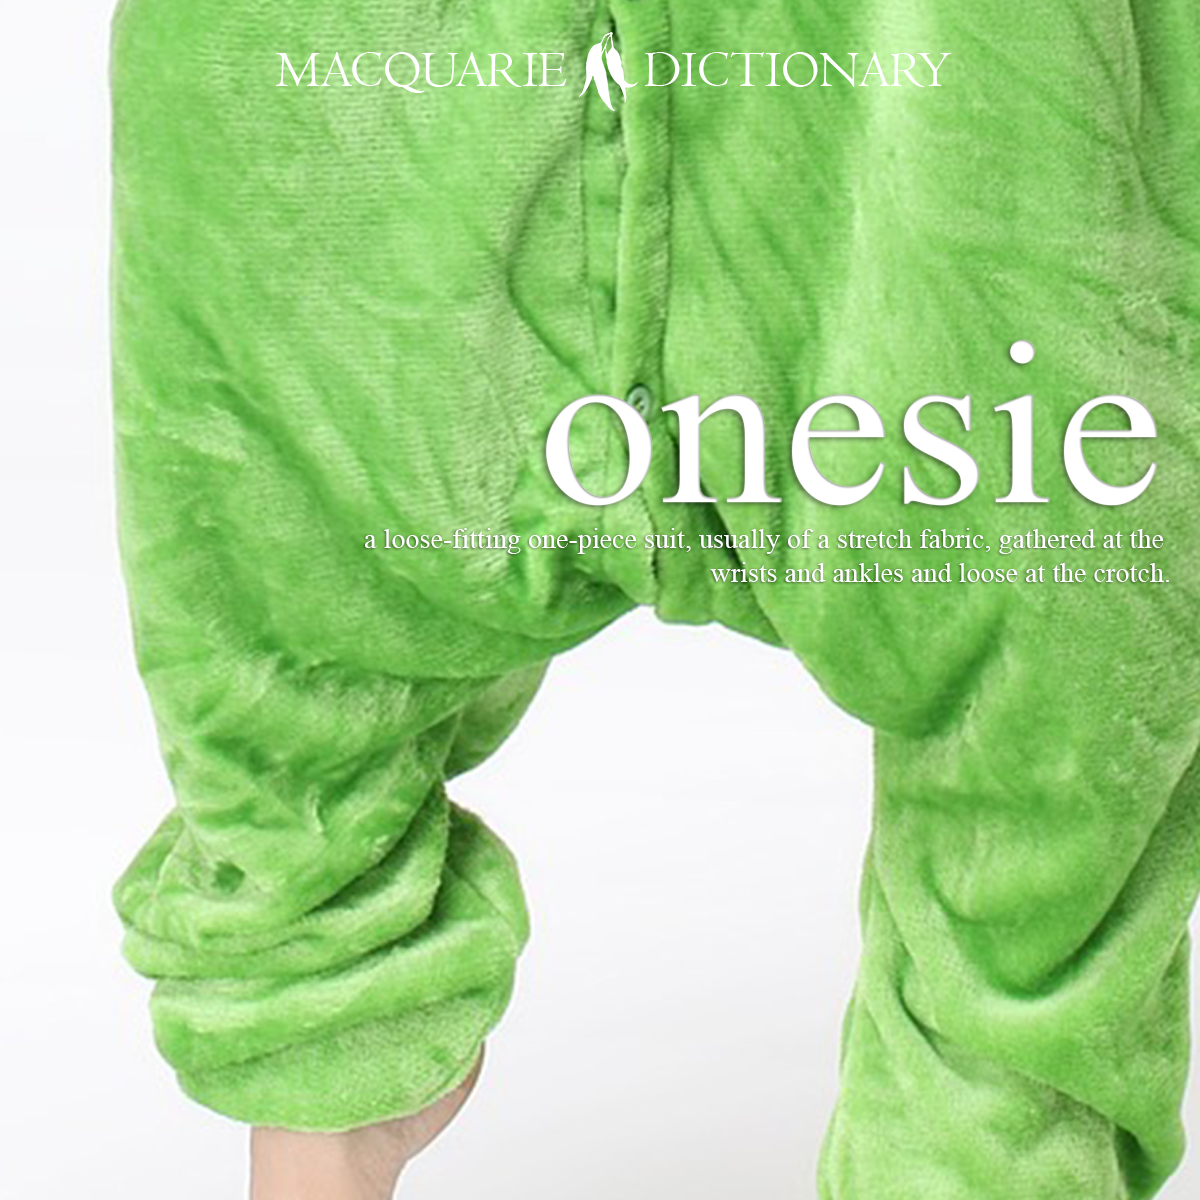 onesie - a loose-fitting one-piece suit, usually of a stretch fabric, gathered at the wrists and ankles and loose at the crotch.